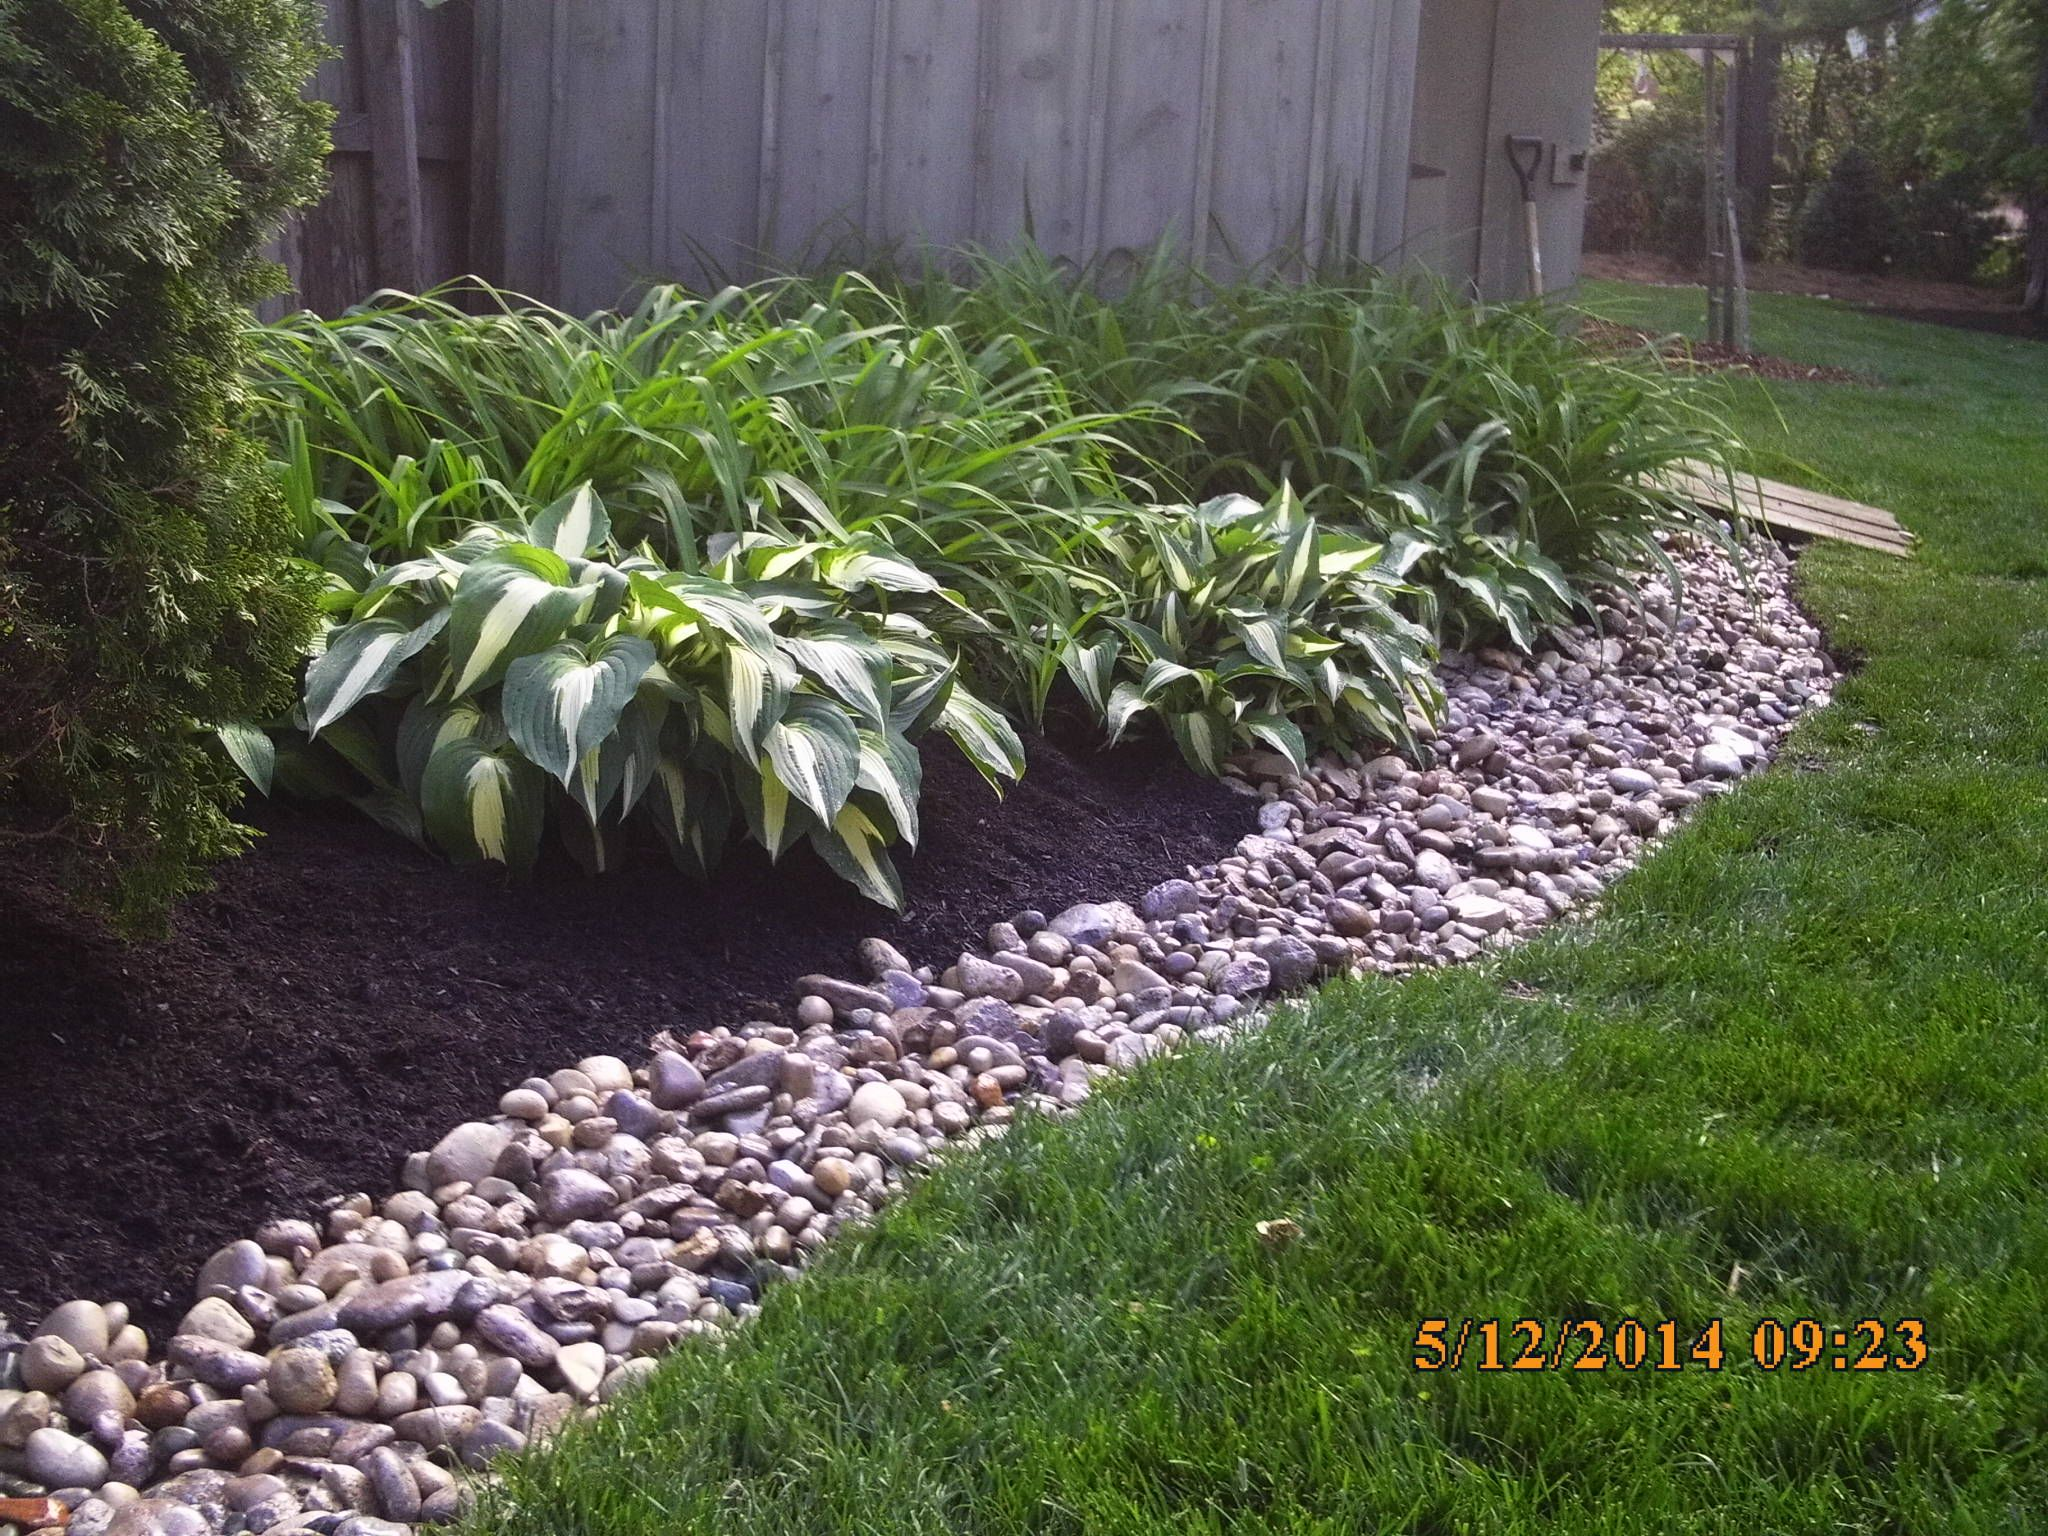 landscape job# 16 - mulch bed w/ river rock bank - spring cleanup